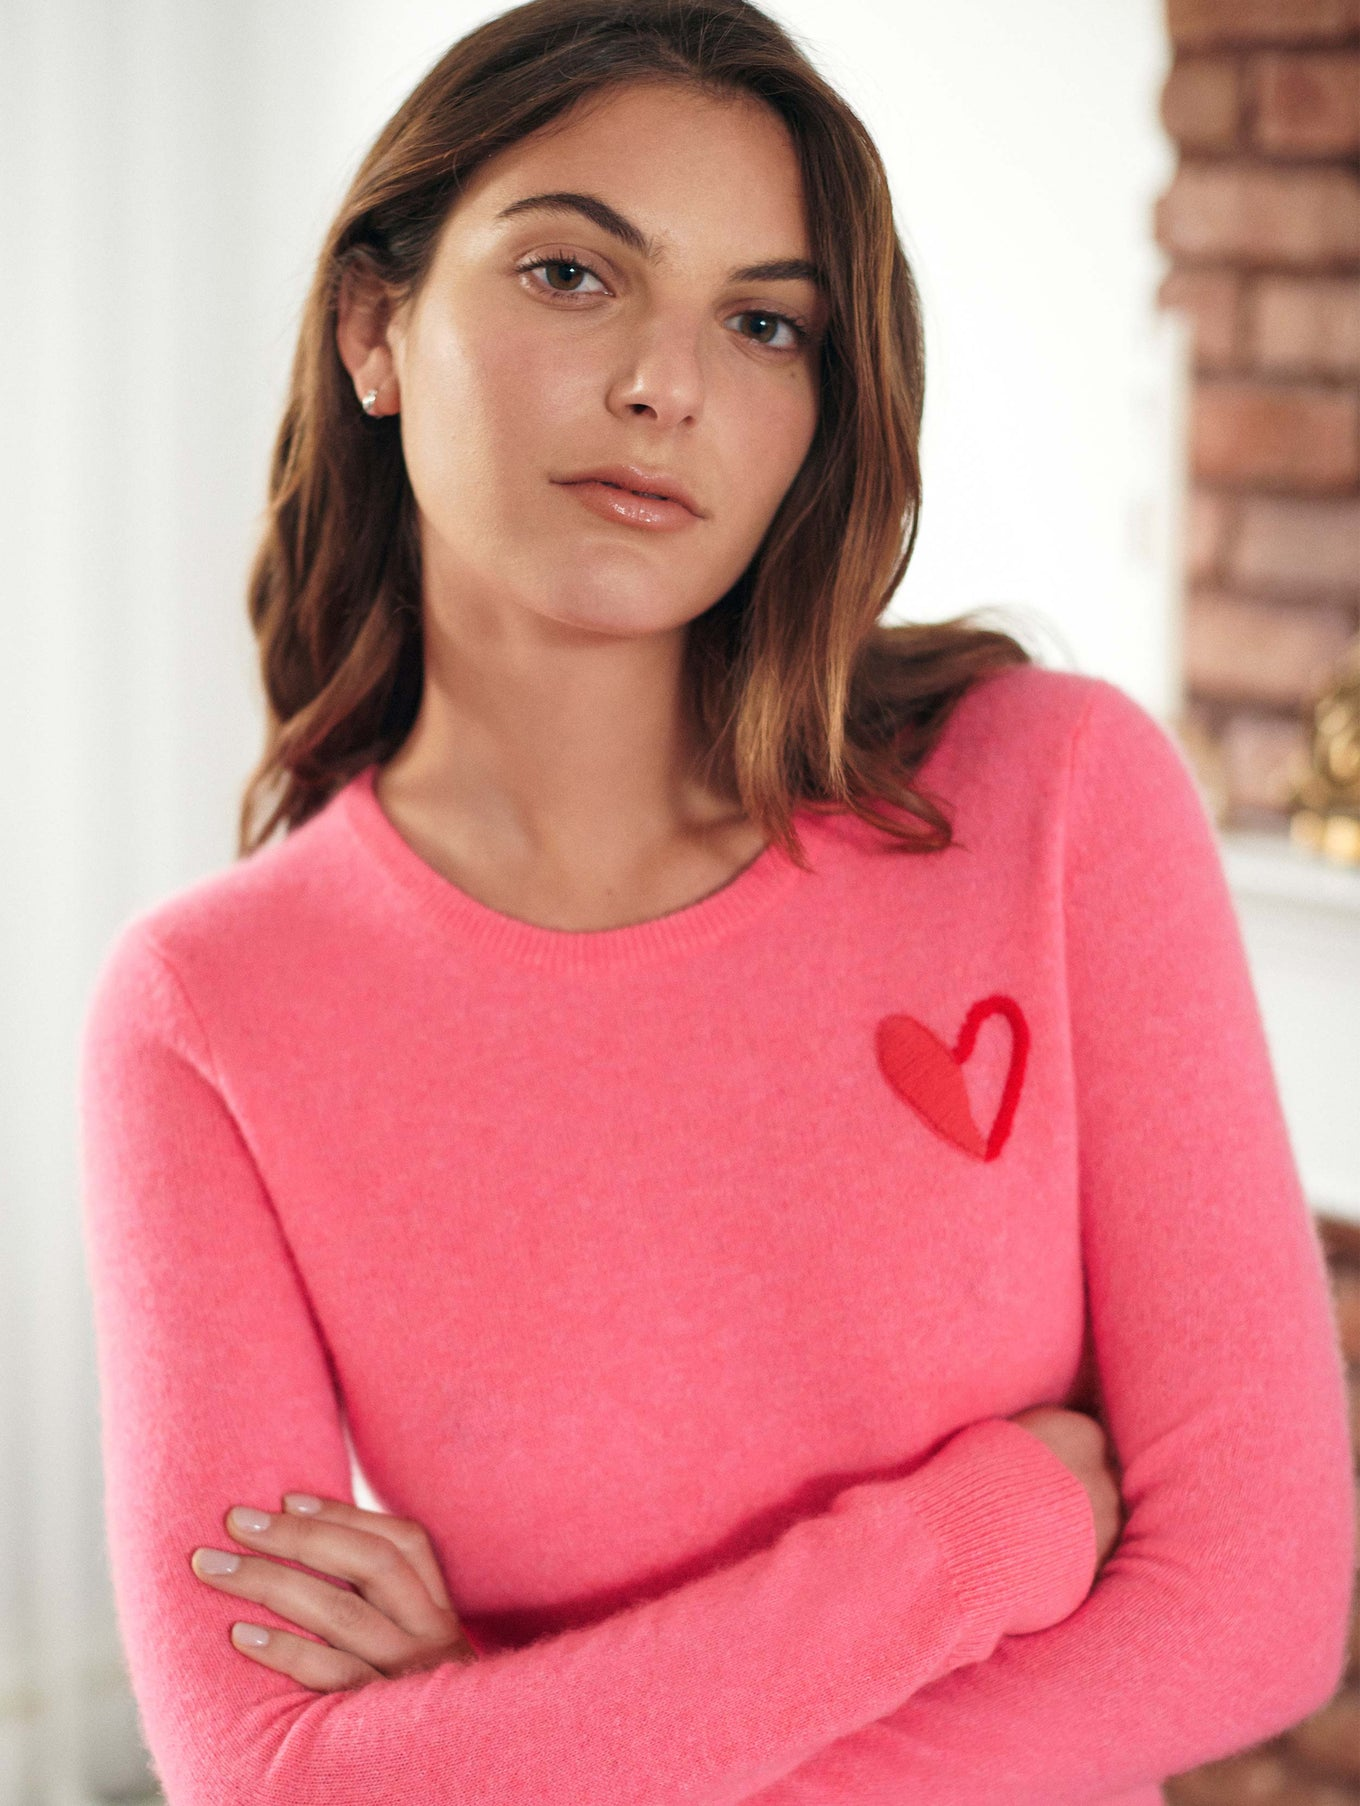 Go Red Cashmere Heart Crewneck